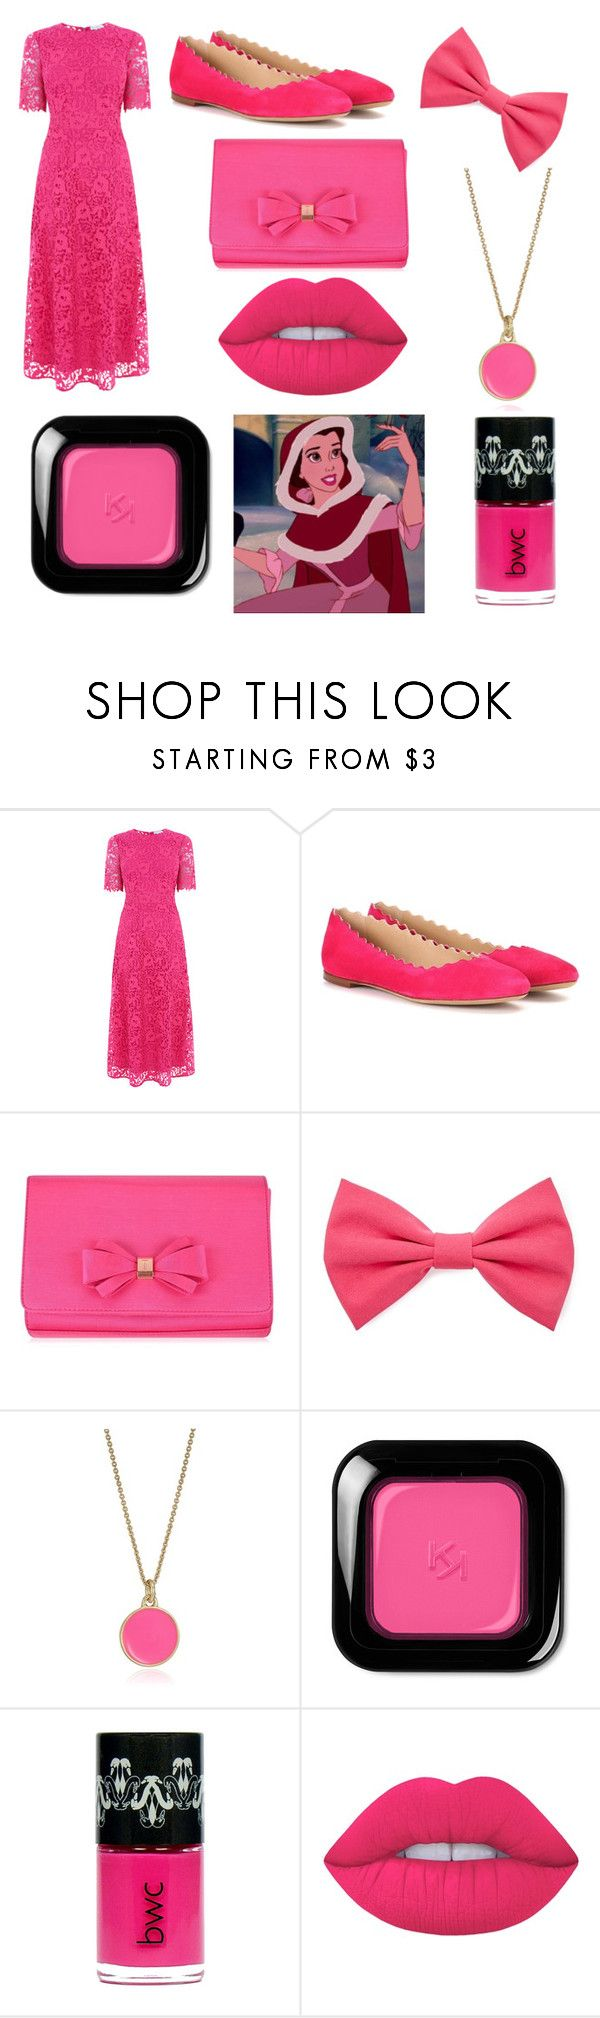 """Belle's pink dress"" by belleandbeast ❤ liked on Polyvore featuring Warehouse, Chloé, Ted Baker, Forever 21, Kate Spade and Lime Crime"